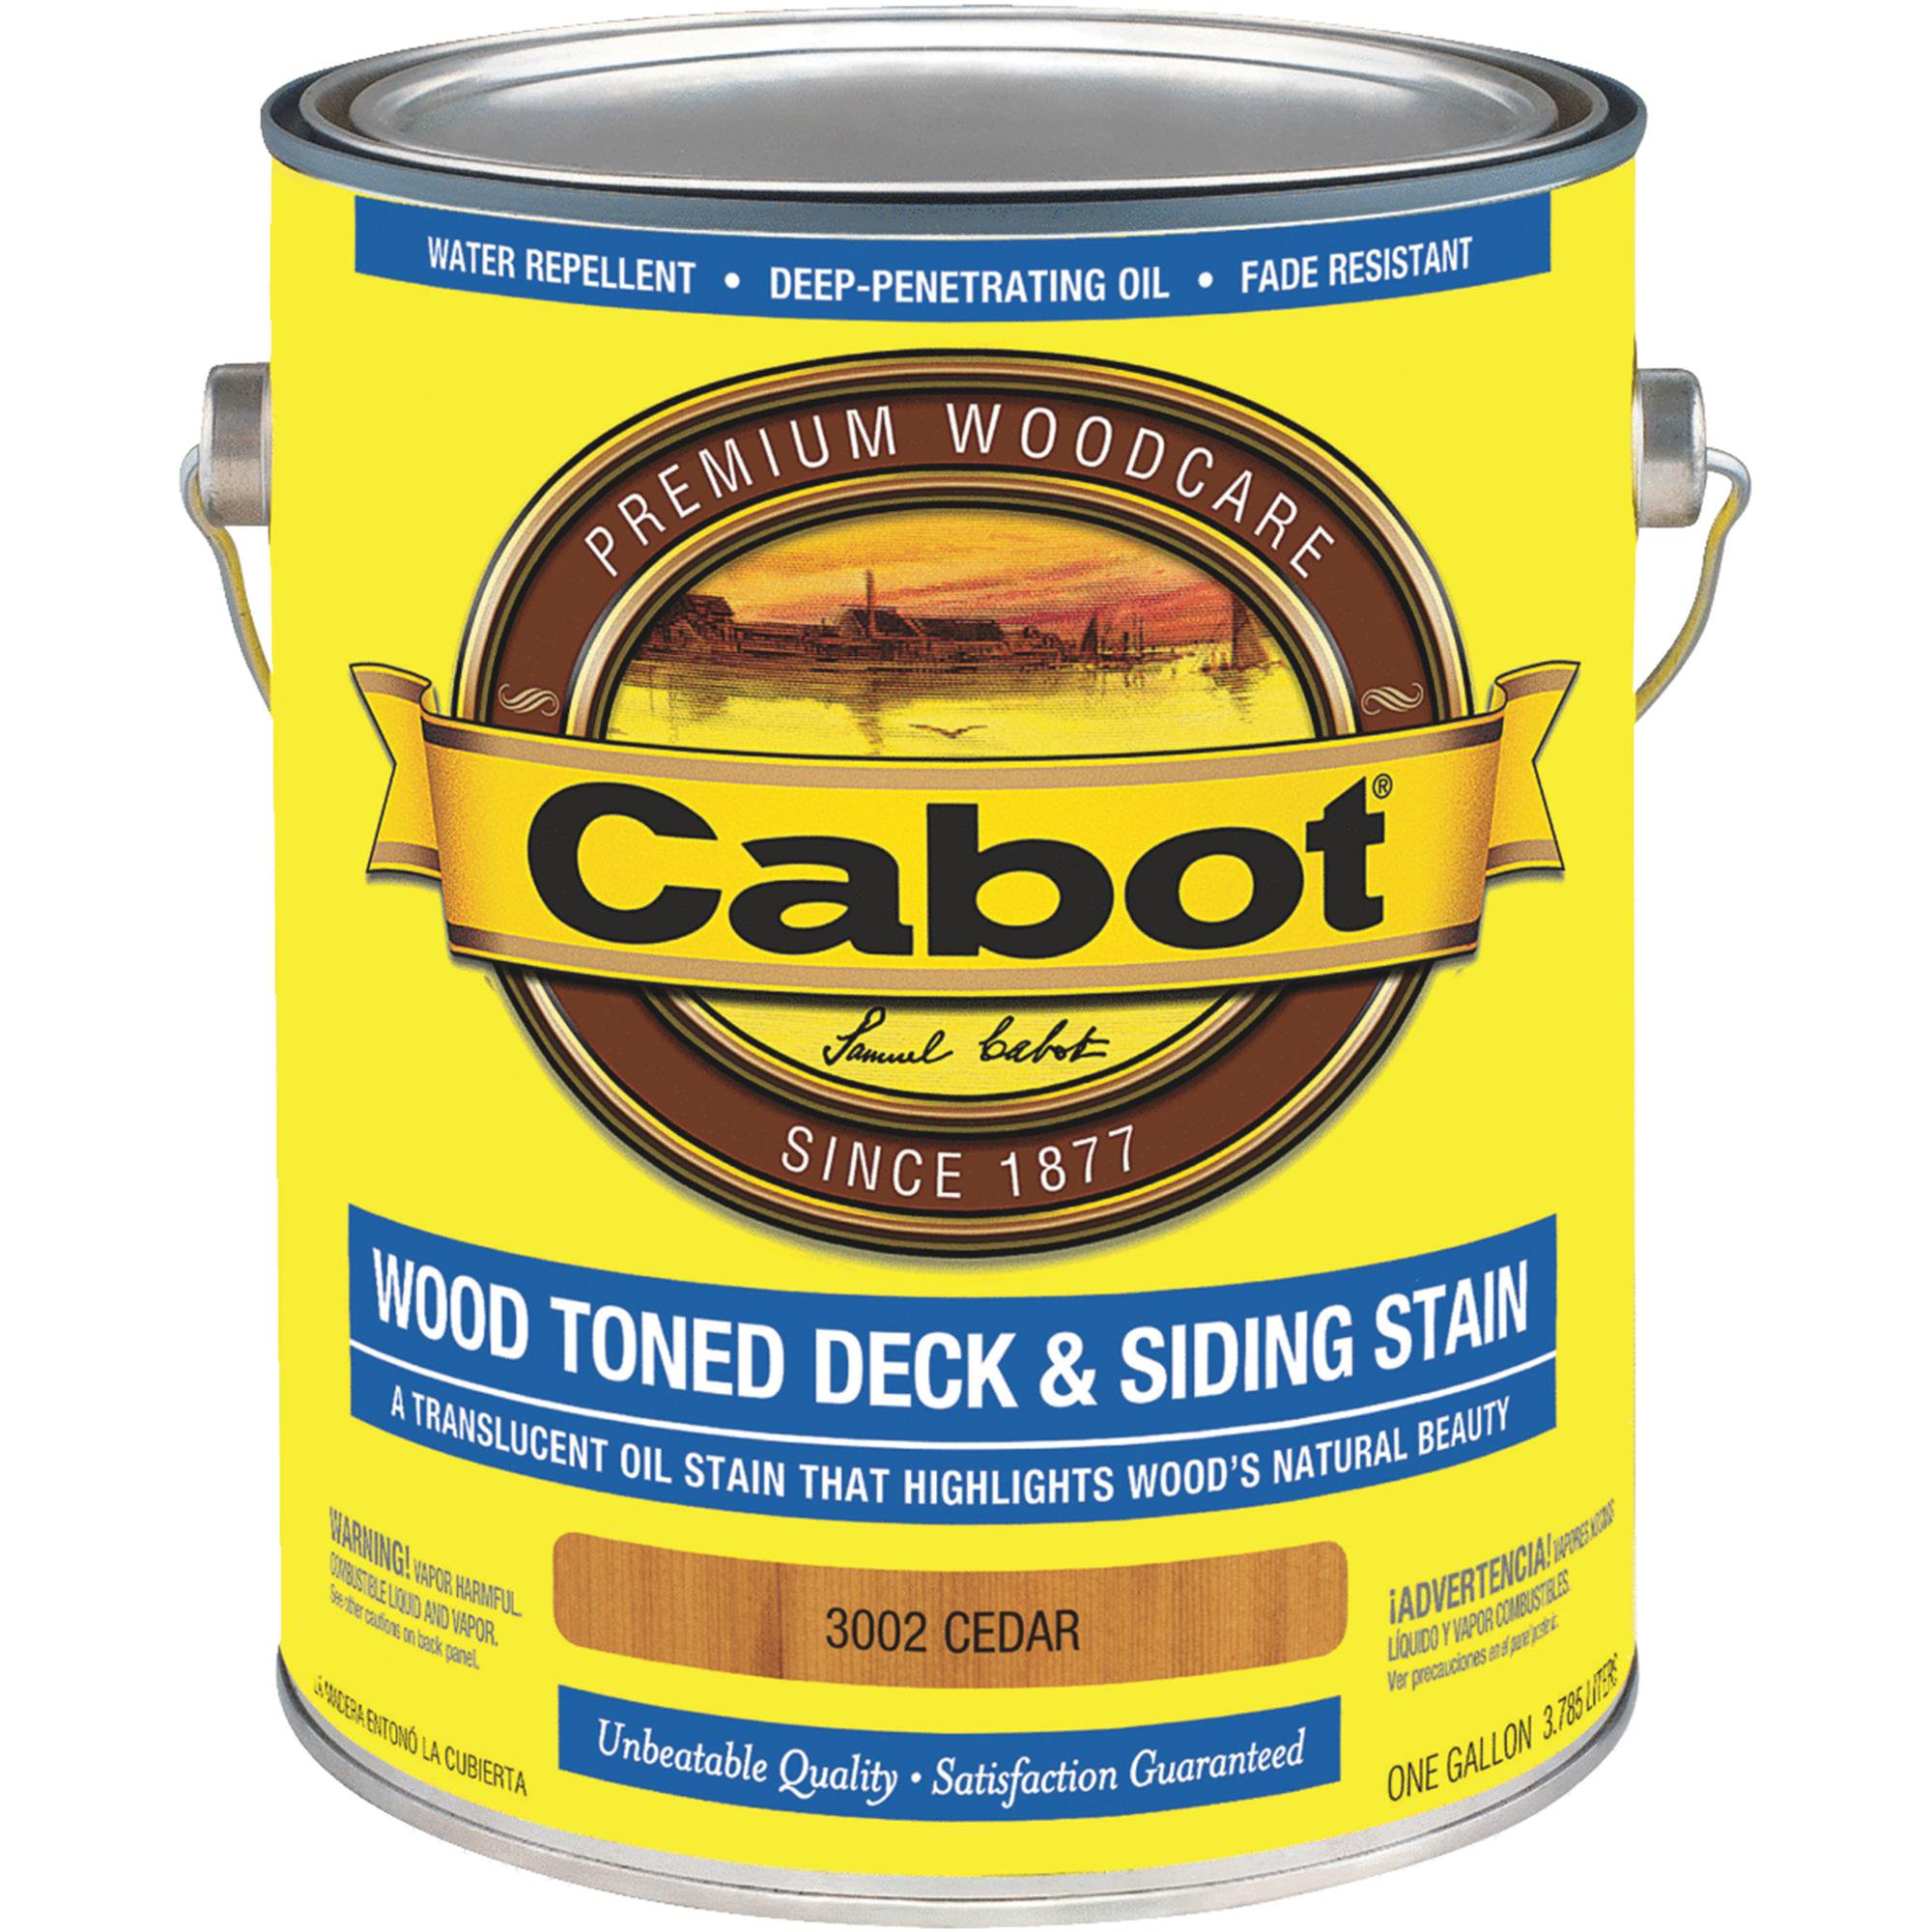 Cabot Alkyd/Oil Base Wood Toned Deck & Siding Stain